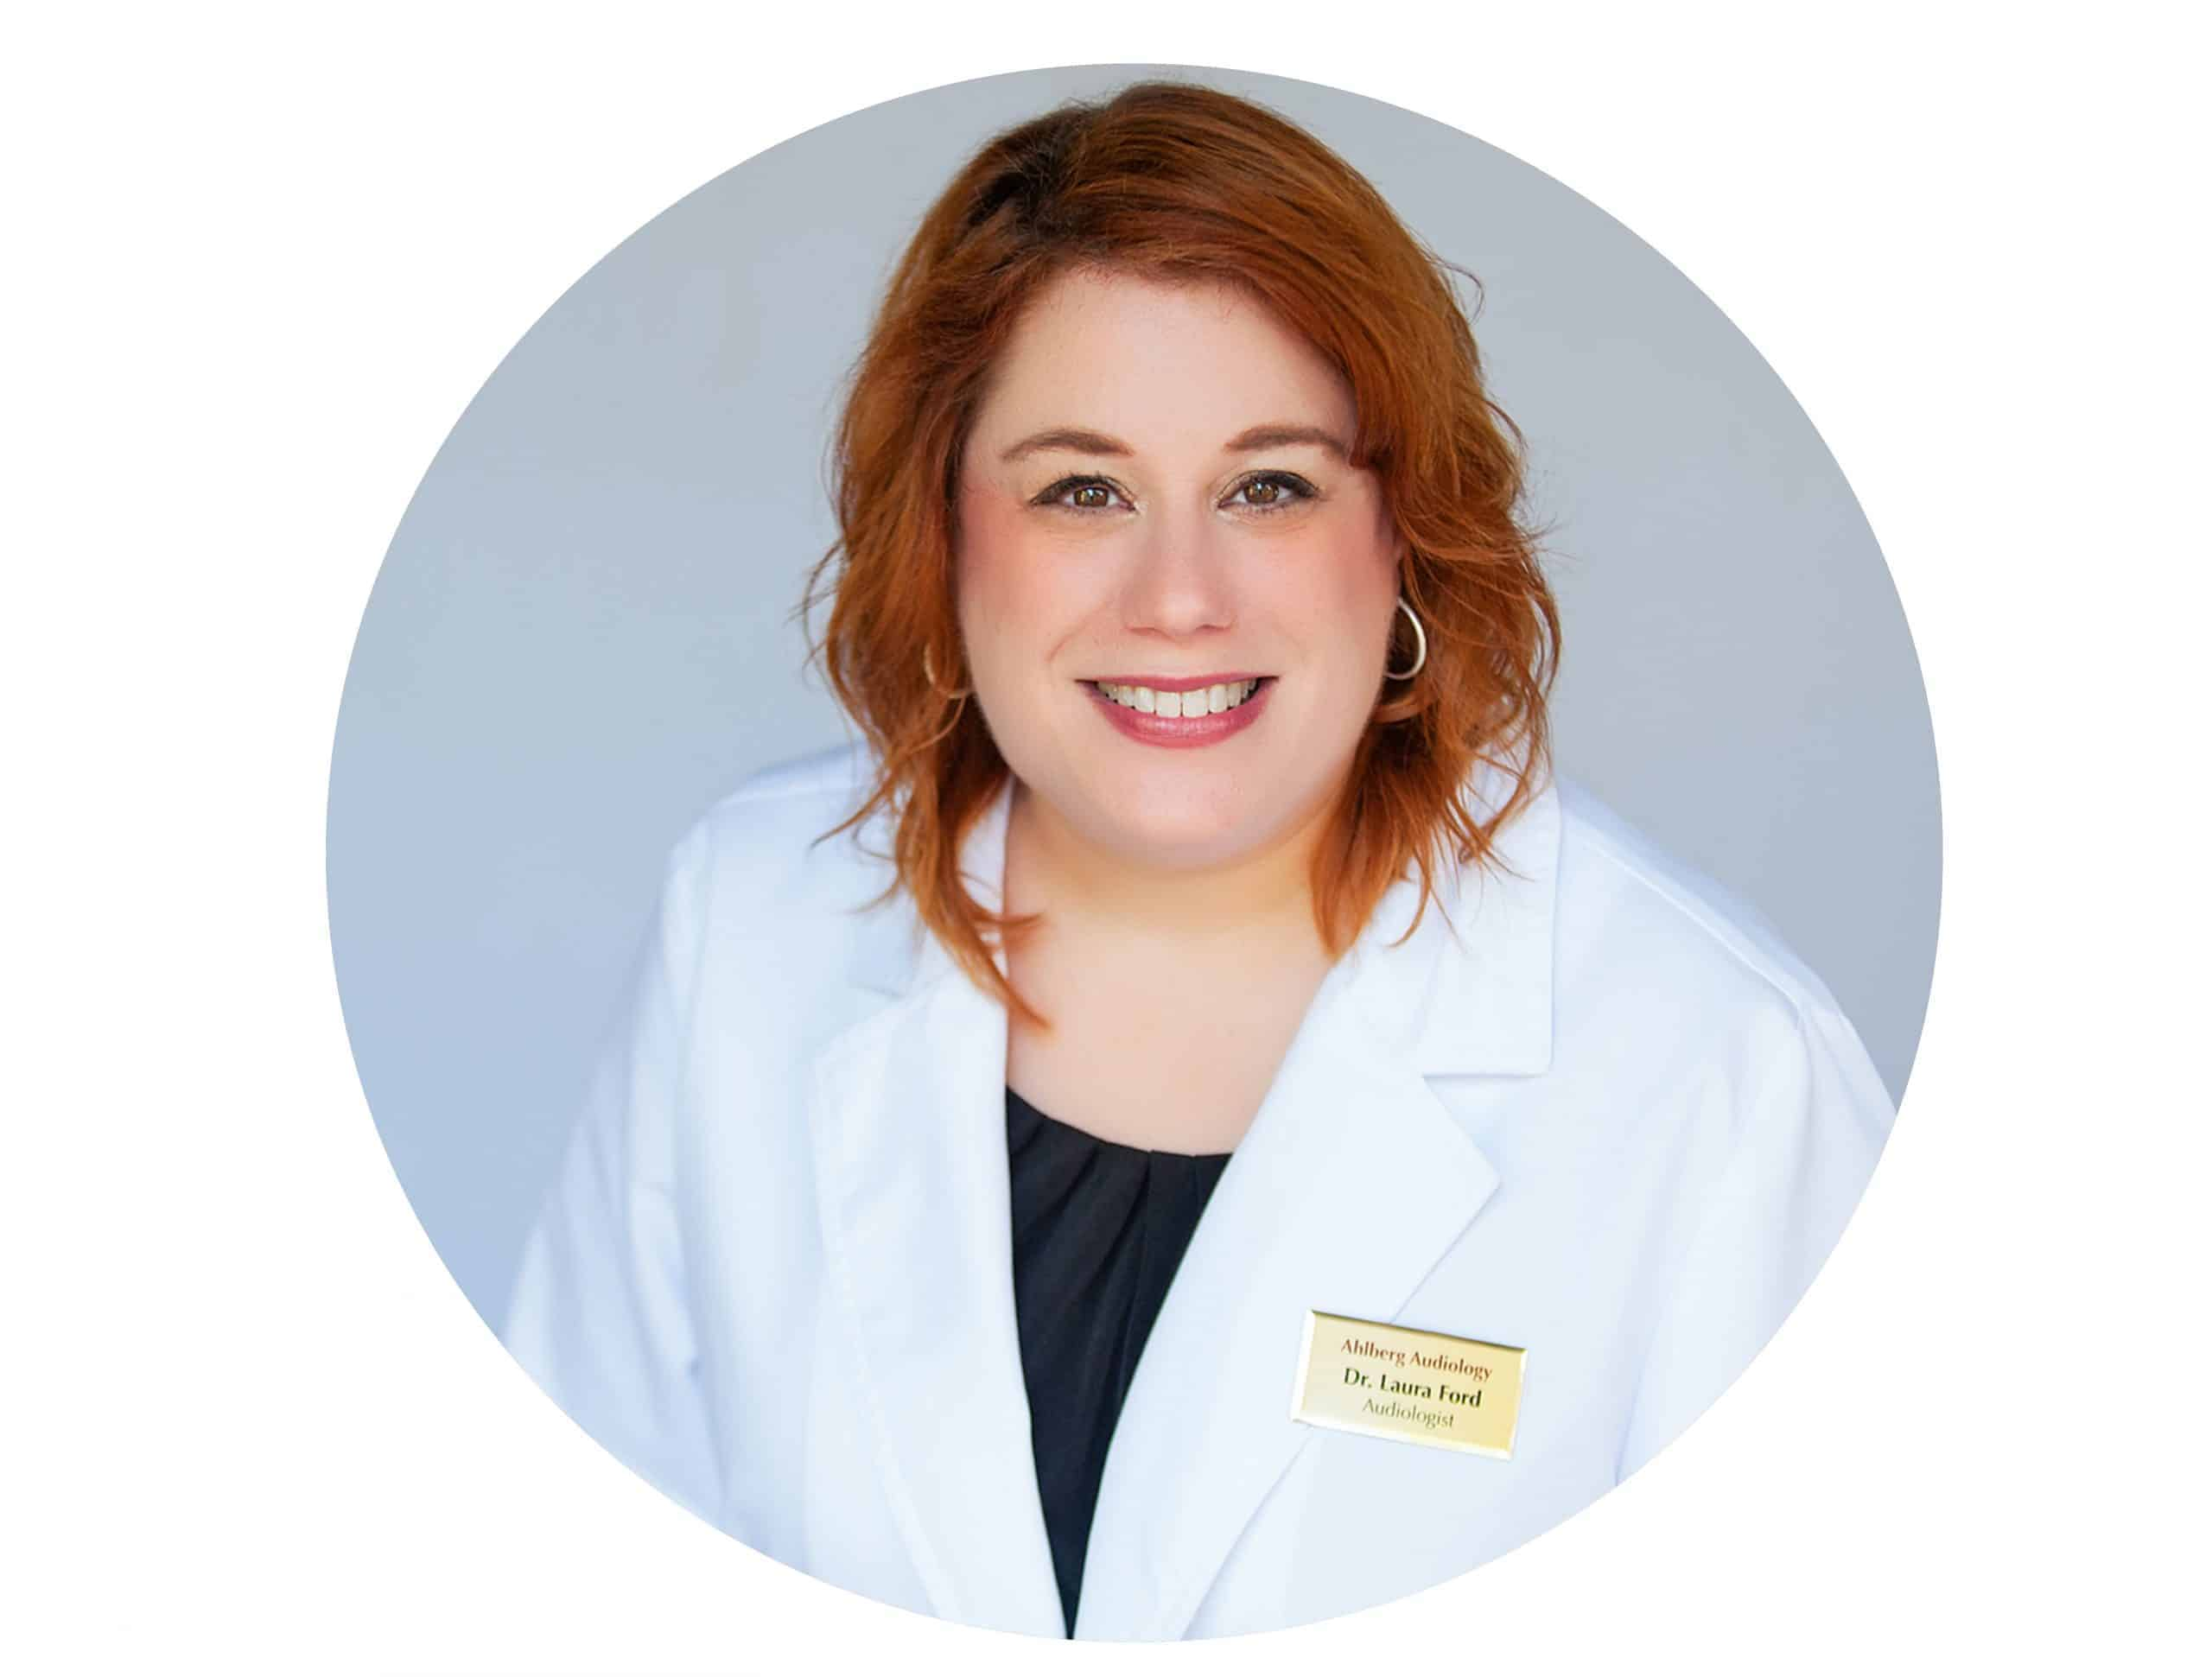 Dr. Laura Ford, Audiologist